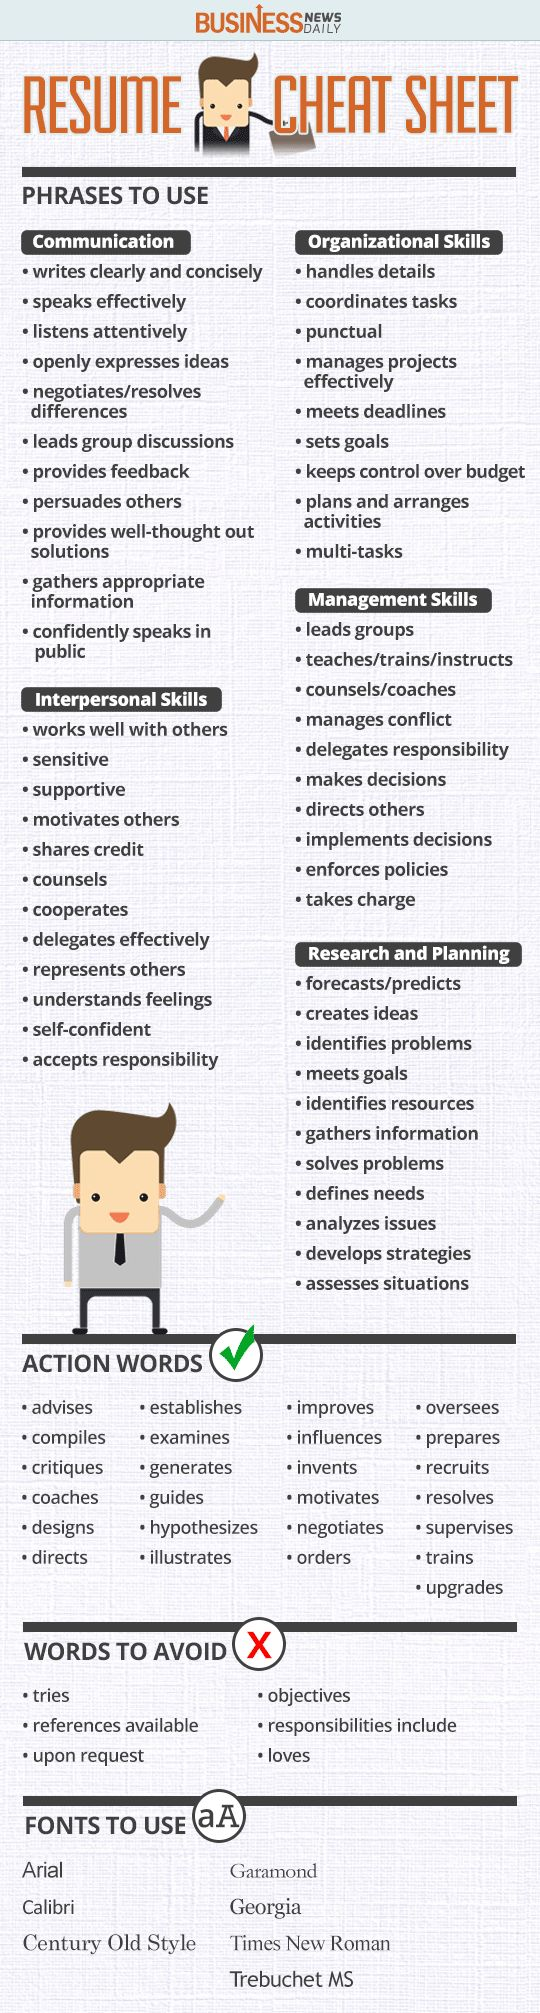 Opposenewapstandardsus  Pretty  Ideas About Resume On Pinterest  Cv Format Resume Cv And  With Hot Resume Cheat Sheet Infographic Andrews Almost Done With A Complete Unit On Employment Which With Enchanting Sale Representative Resume Also Automation Engineer Resume In Addition Sample Resume For Job And Dance Resume For College As Well As Accounting Objective Resume Additionally Military Resume Examples For Civilian From Pinterestcom With Opposenewapstandardsus  Hot  Ideas About Resume On Pinterest  Cv Format Resume Cv And  With Enchanting Resume Cheat Sheet Infographic Andrews Almost Done With A Complete Unit On Employment Which And Pretty Sale Representative Resume Also Automation Engineer Resume In Addition Sample Resume For Job From Pinterestcom